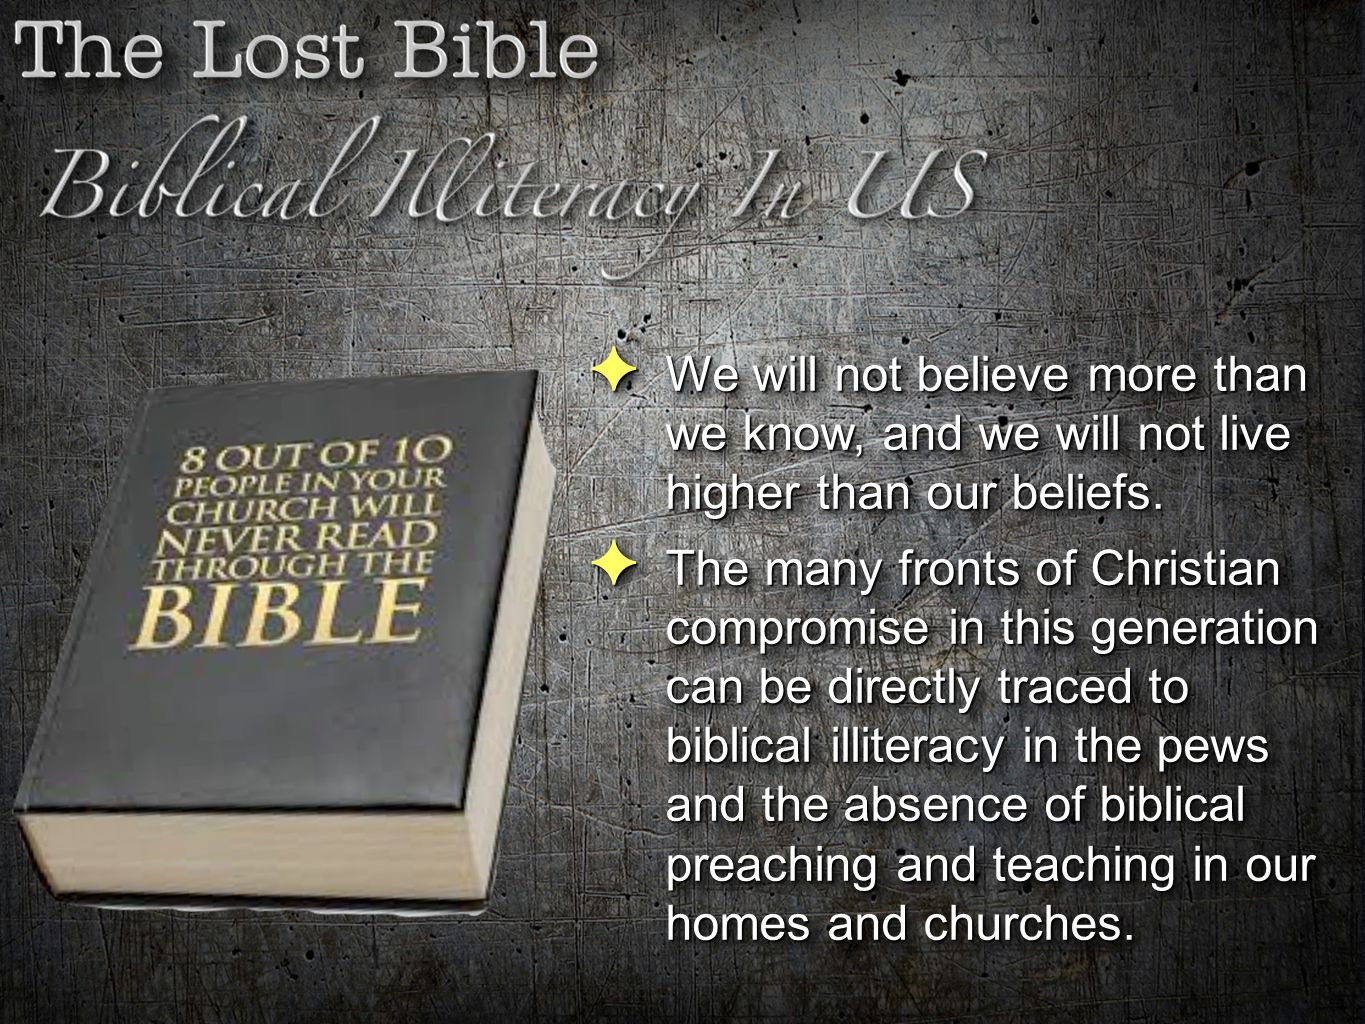 We will not believe more than we know, and we will not live higher than our beliefs.